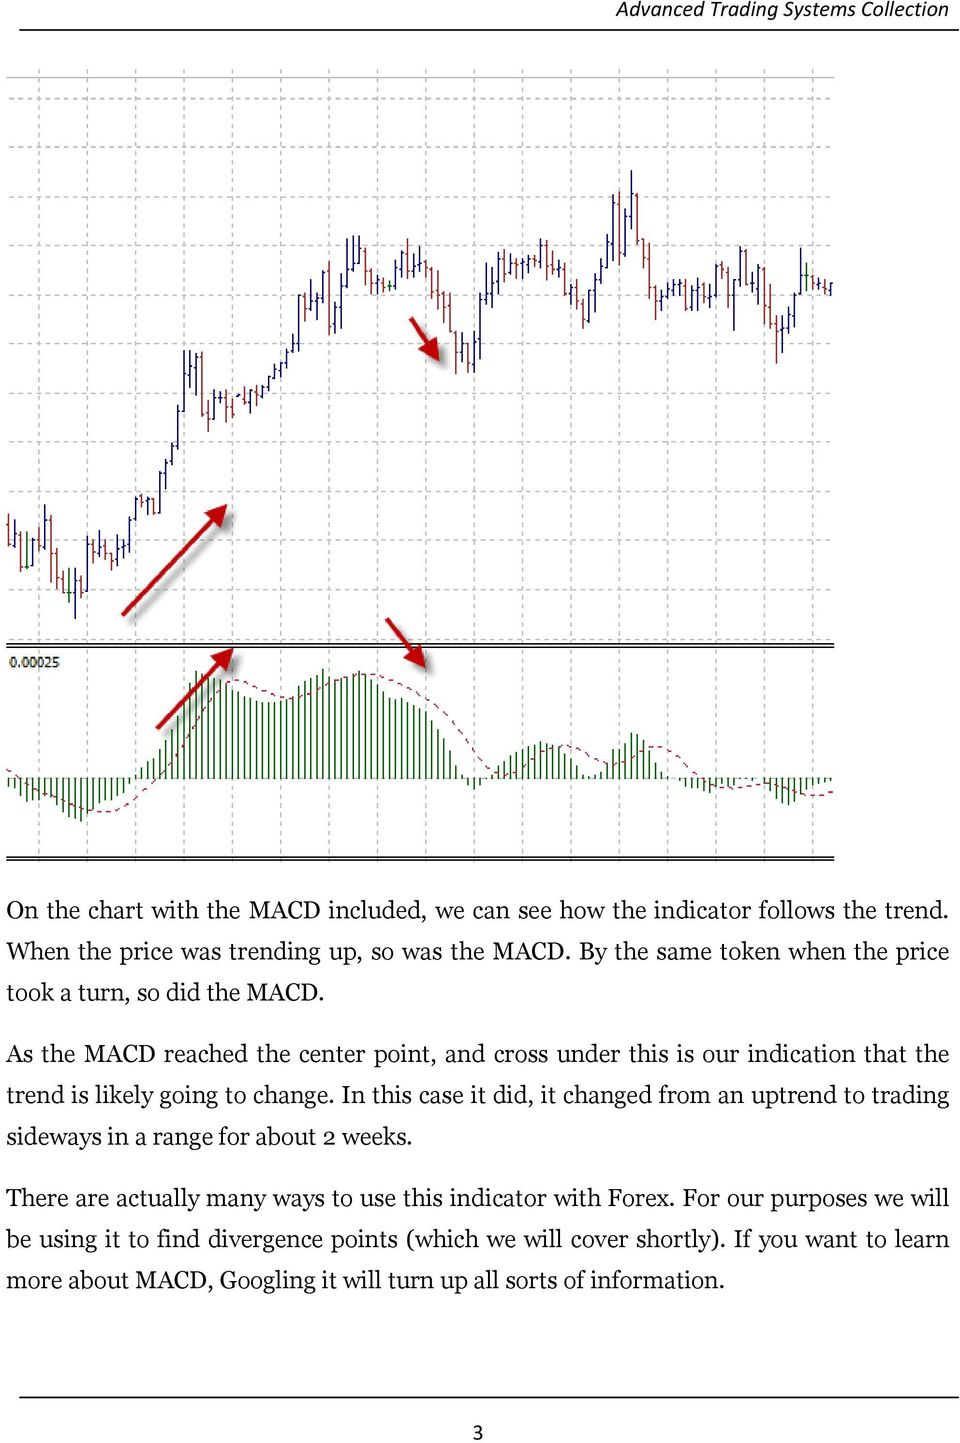 As the MACD reached the center point, and cross under this is our indication that the trend is likely going to change.